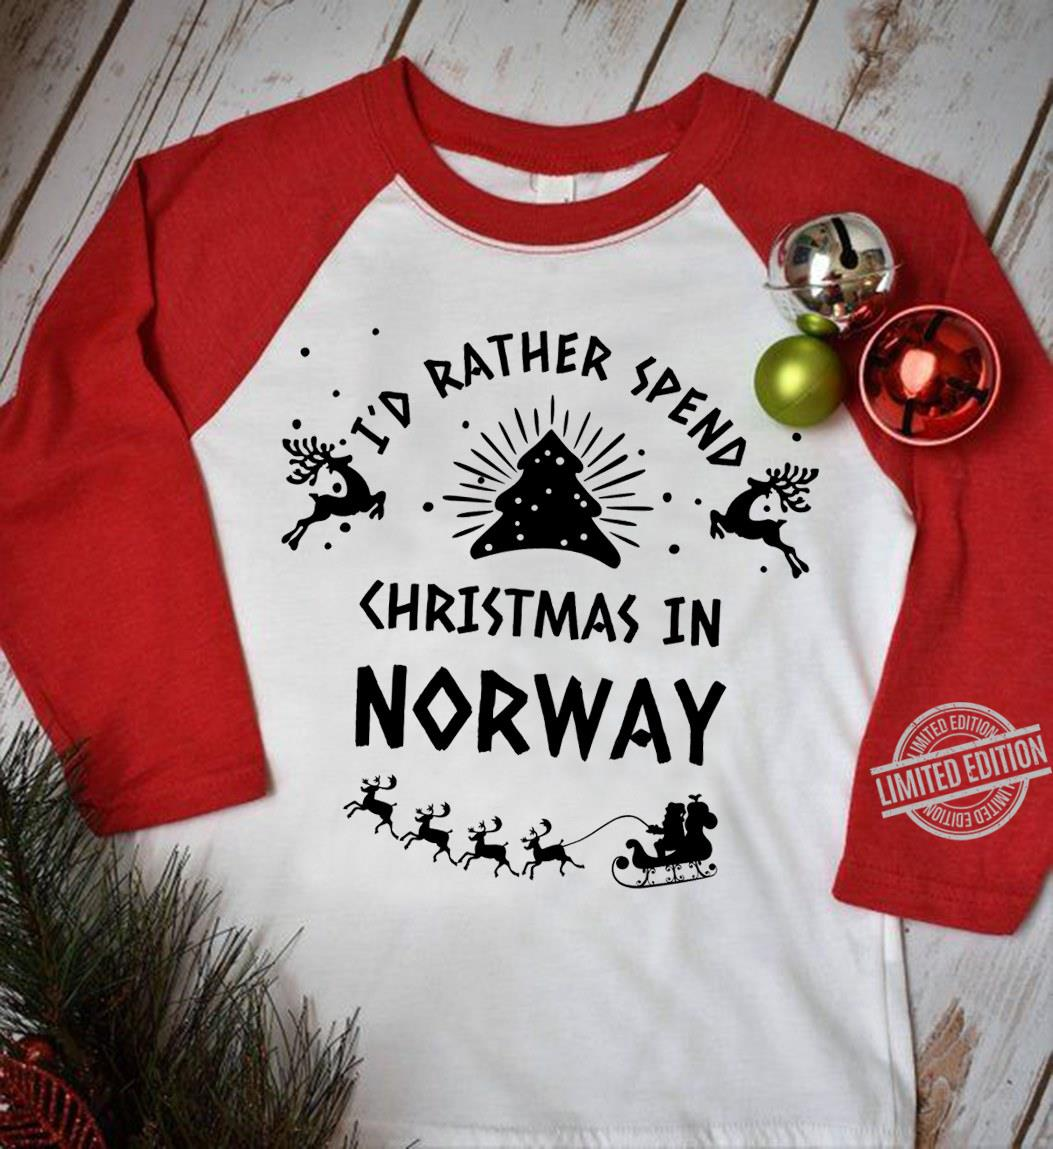 I'd Rather Spend Christmas In Norway Shirt